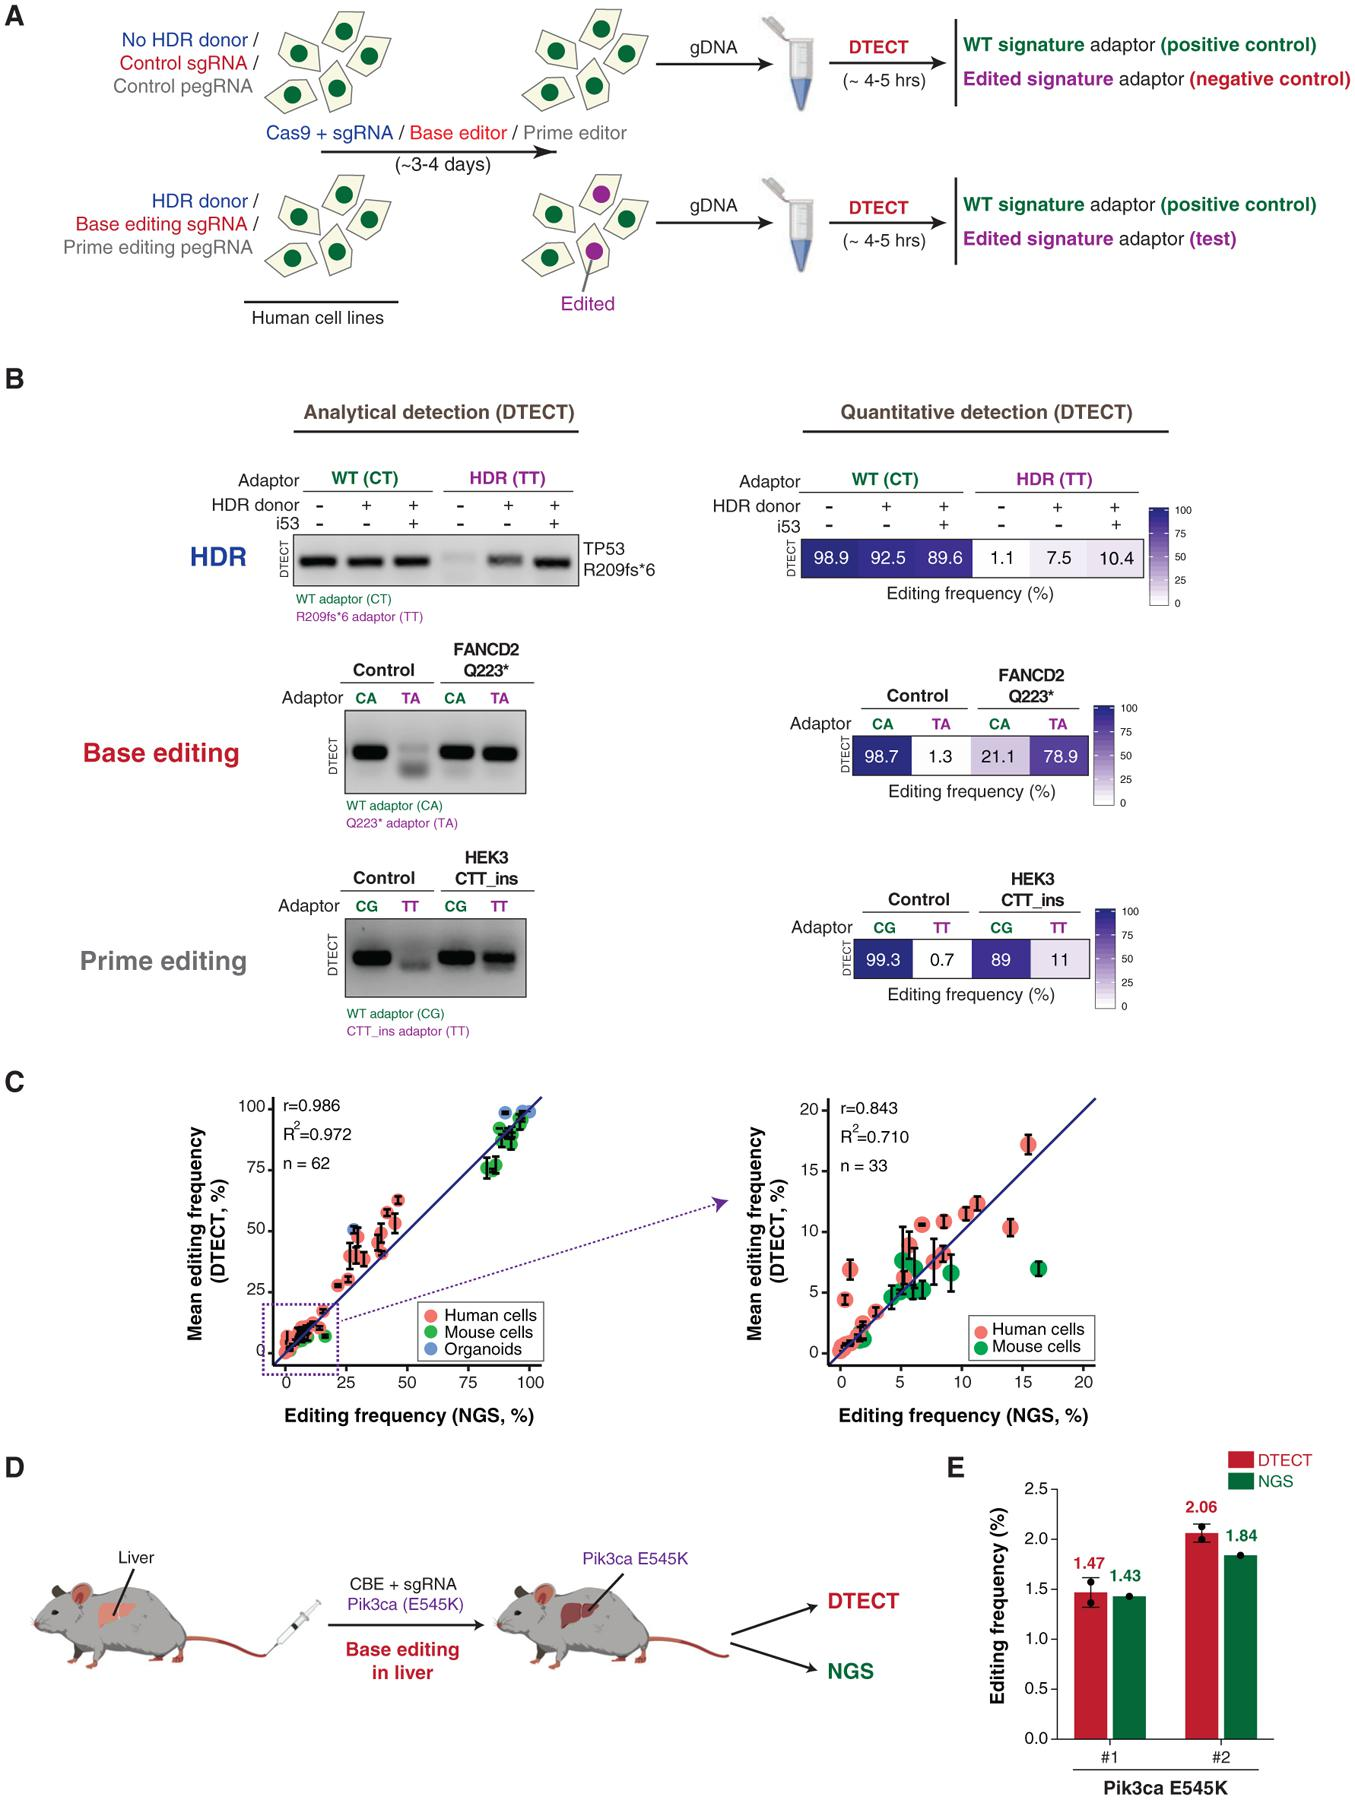 Detection and Quantification of Precision Genome Editing by CRISPR-Mediated HDR, Base Editing, and Prime Editing Using DTECT (A) Schematics of the protocol used to identify genomic changes introduced by CRISPR-dependent HDR, base editing, or prime editing. In HDR experiments (blue), HEK293T cells were transfected with <t>Cas9</t> and an sgRNA targeting a gene of interest with or without donor DNA molecules. In base editing experiments (red), HEK293T cells were transfected with BE3 base editors with either control or base editing sgRNAs. Base editing experiments were also conducted in cells stably expressing FNLS-BE3. In prime editing experiments (gray), HEK293T cells were transfected with PE2 with or without pegRNA. gDNA was then extracted from cell populations and subjected to DTECT using adaptors specific for WT (green) or edited (purple) variants. (B) Identification by DTECT of WT and HDR-edited (R209fs*6) TP53 alleles (top), WT and base-edited (Q223*) FANCD2 alleles (middle), and WT and prime-edited (CTT_ins) HEK3 alleles (bottom). Adaptors specific for the WT (CT, CA, and CG; green) or edited (TT and TA; purple) signatures were used in DTECT experiments. Captured samples were subjected to analytical PCR (left, 21 cycles) or qPCR (right). In the HDR experiment, cells were transfected with Cas9, sgRNA, and an ssODN specific for the TP53 locus with or without the HDR stimulatory factor i53. The ssODN was omitted in control reactions. In the base editing experiment, cells were transfected with BE3 and an sgRNA to induce Q223* in FANCD2. In prime editing experiments, cells were transfected with PE2 and pegRNA to introduce a CTT insertion in the HEK3 locus. (C) Graphical representation of the correlation of DTECT- and NGS-based estimations of the frequency of genetic variants introduced by precision genome editing in human and mouse cells and mouse intestinal organoids (n = 62). Data points in the dashed box (frequency